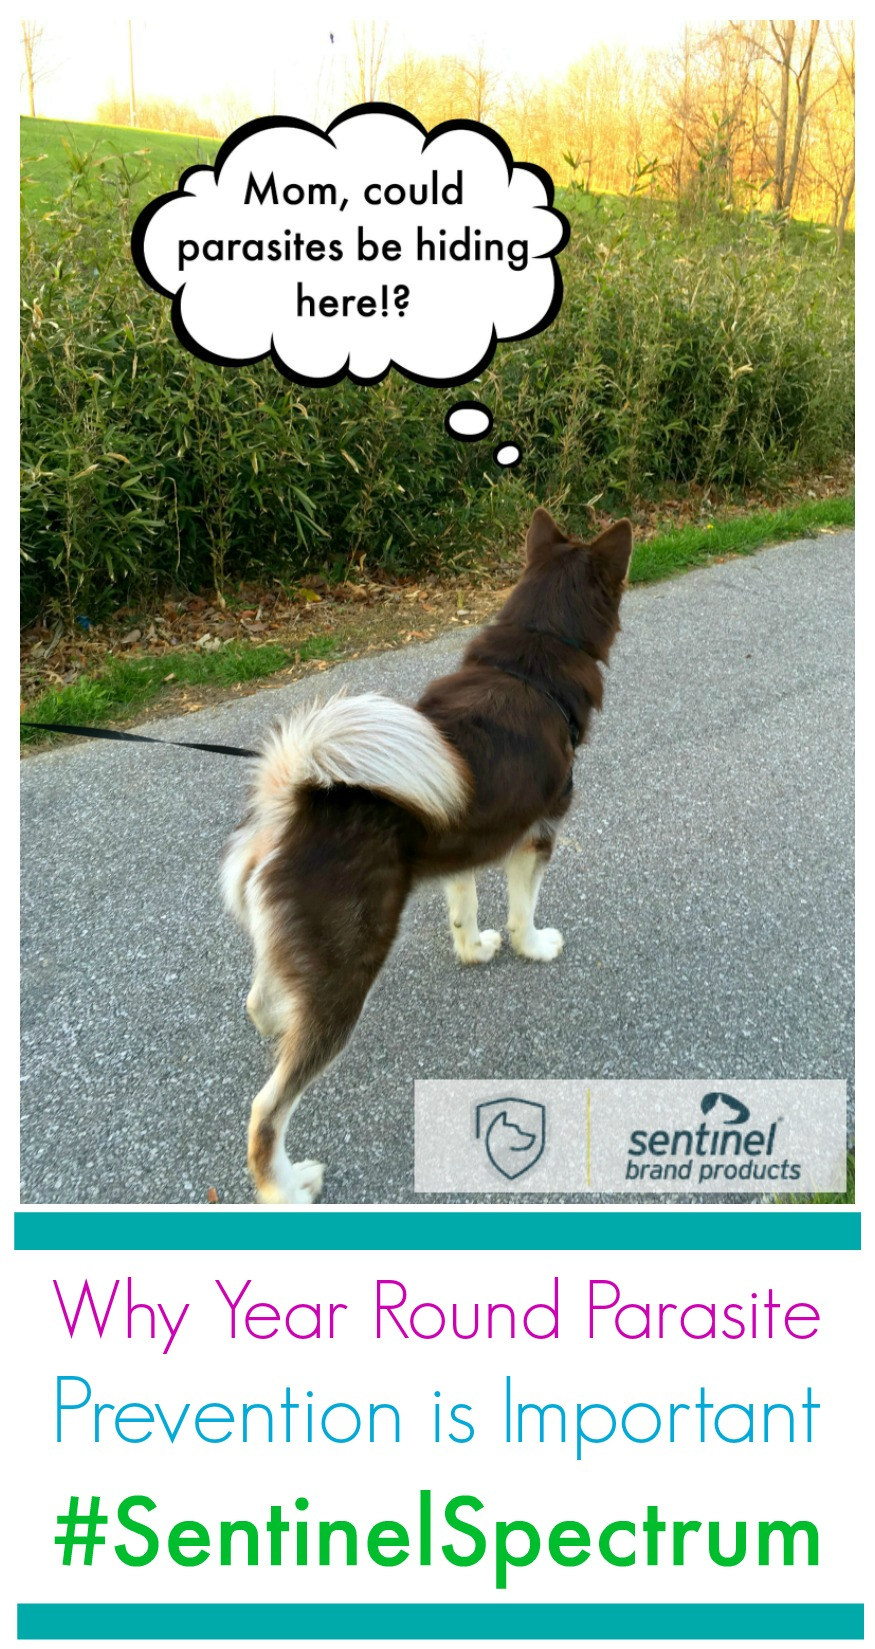 Do you use a year round parasite prevention with your dogs? see how Sentinel Spectrum protected Ivi from Rylie's puppy roundworms here! #SentinelSpectrum